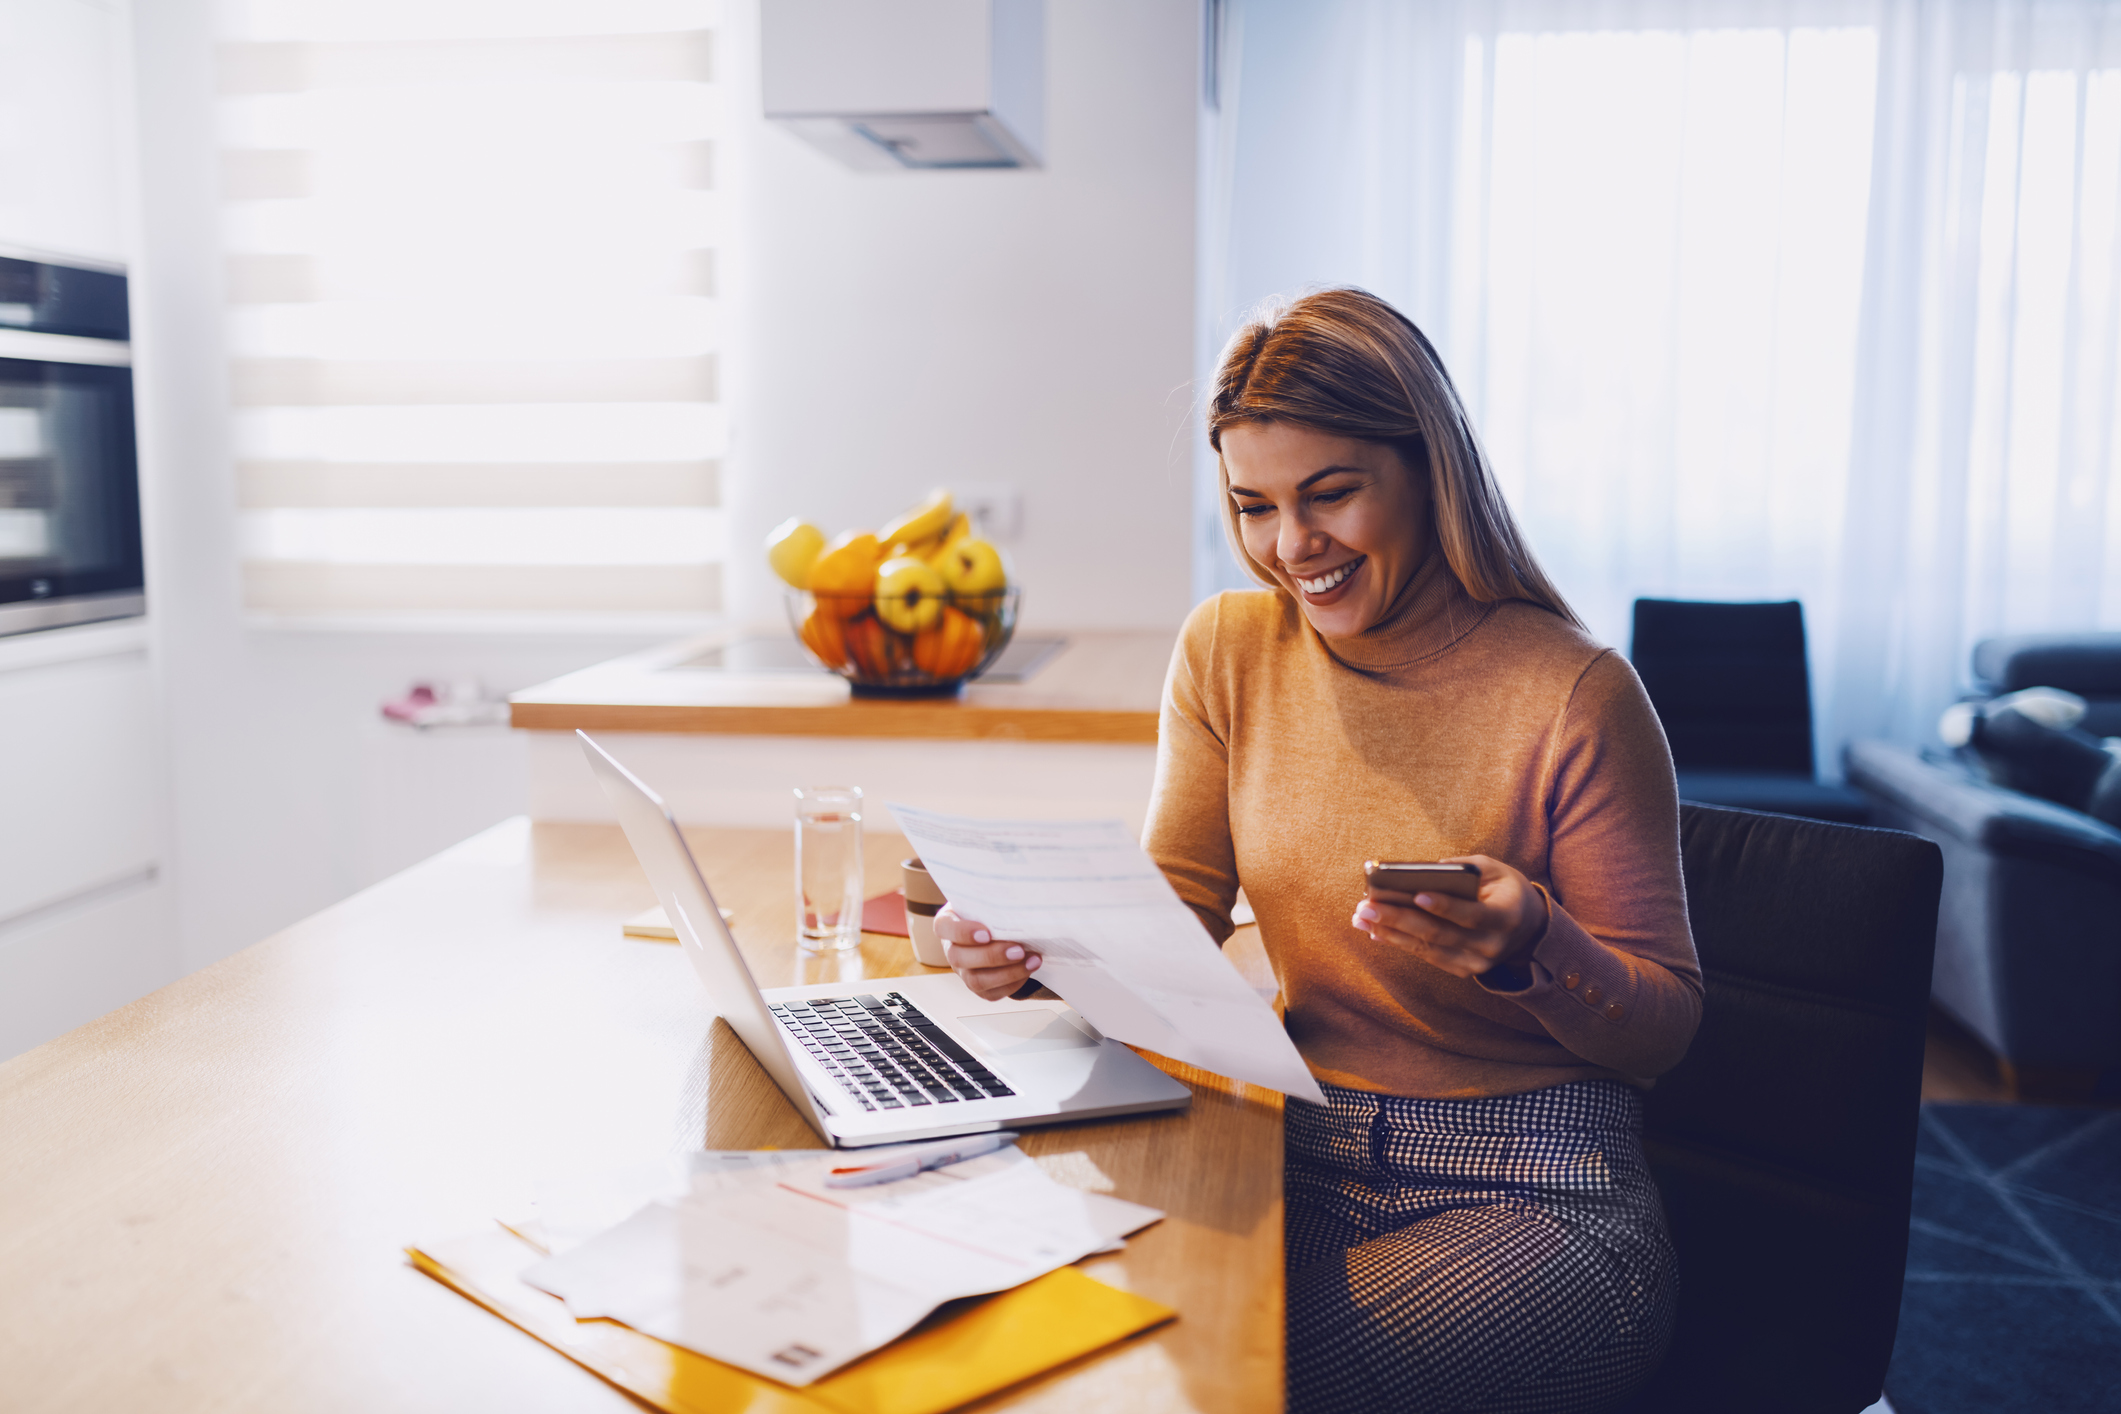 woman in sweater holding bills in one hand and in other smart phone. On table are laptop and bills